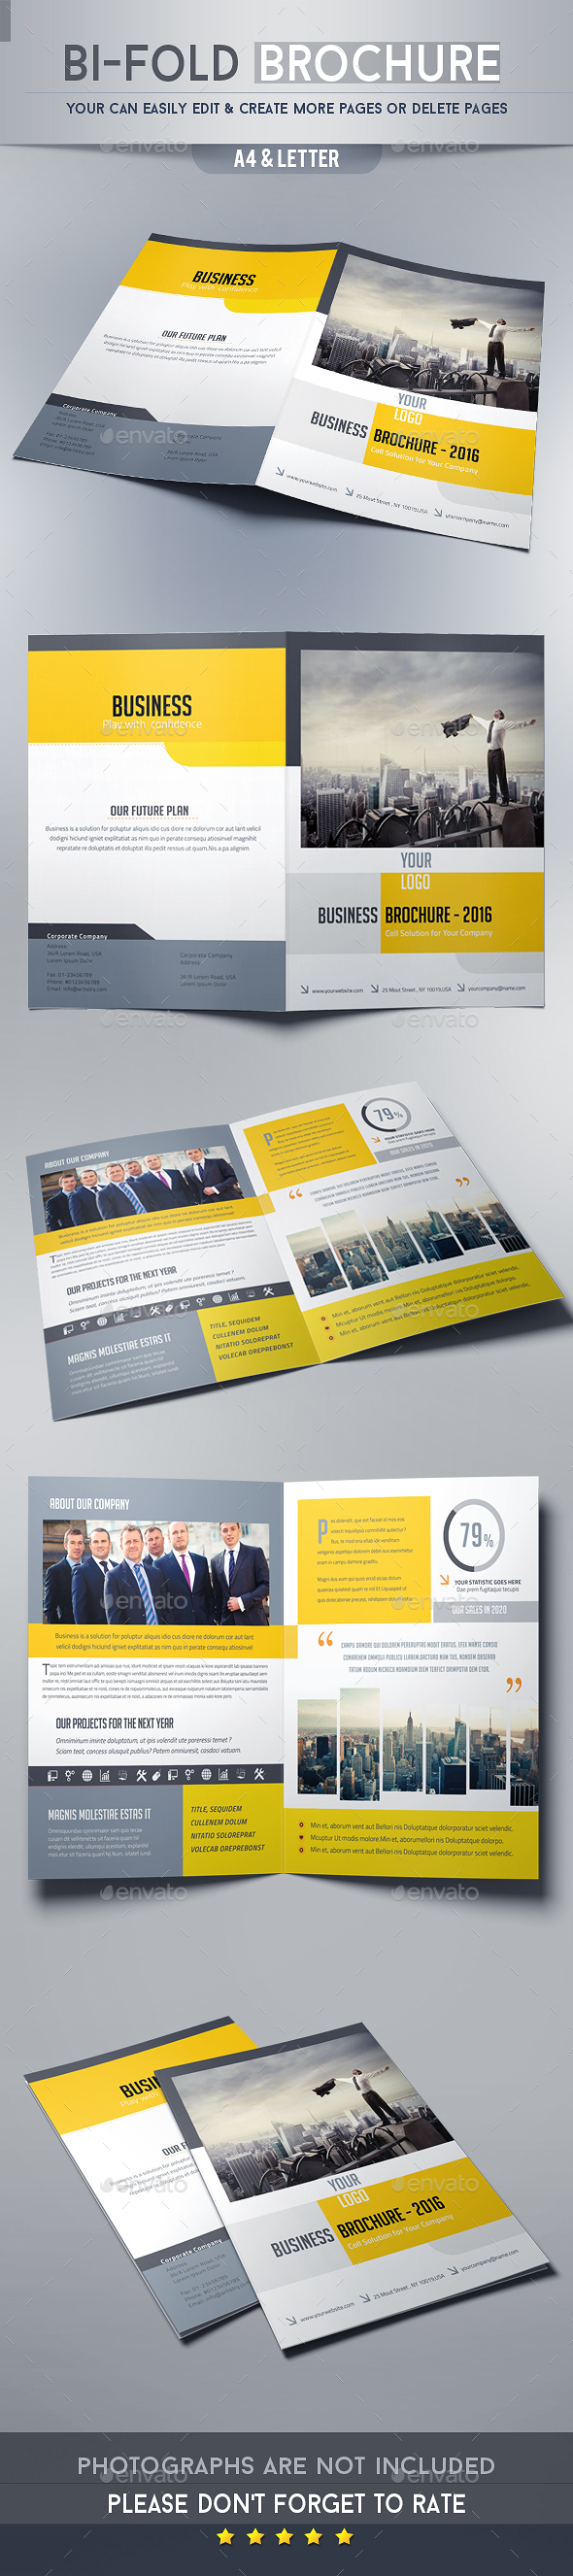 bi fold brochure template indesign indd design download httpgraphicriver